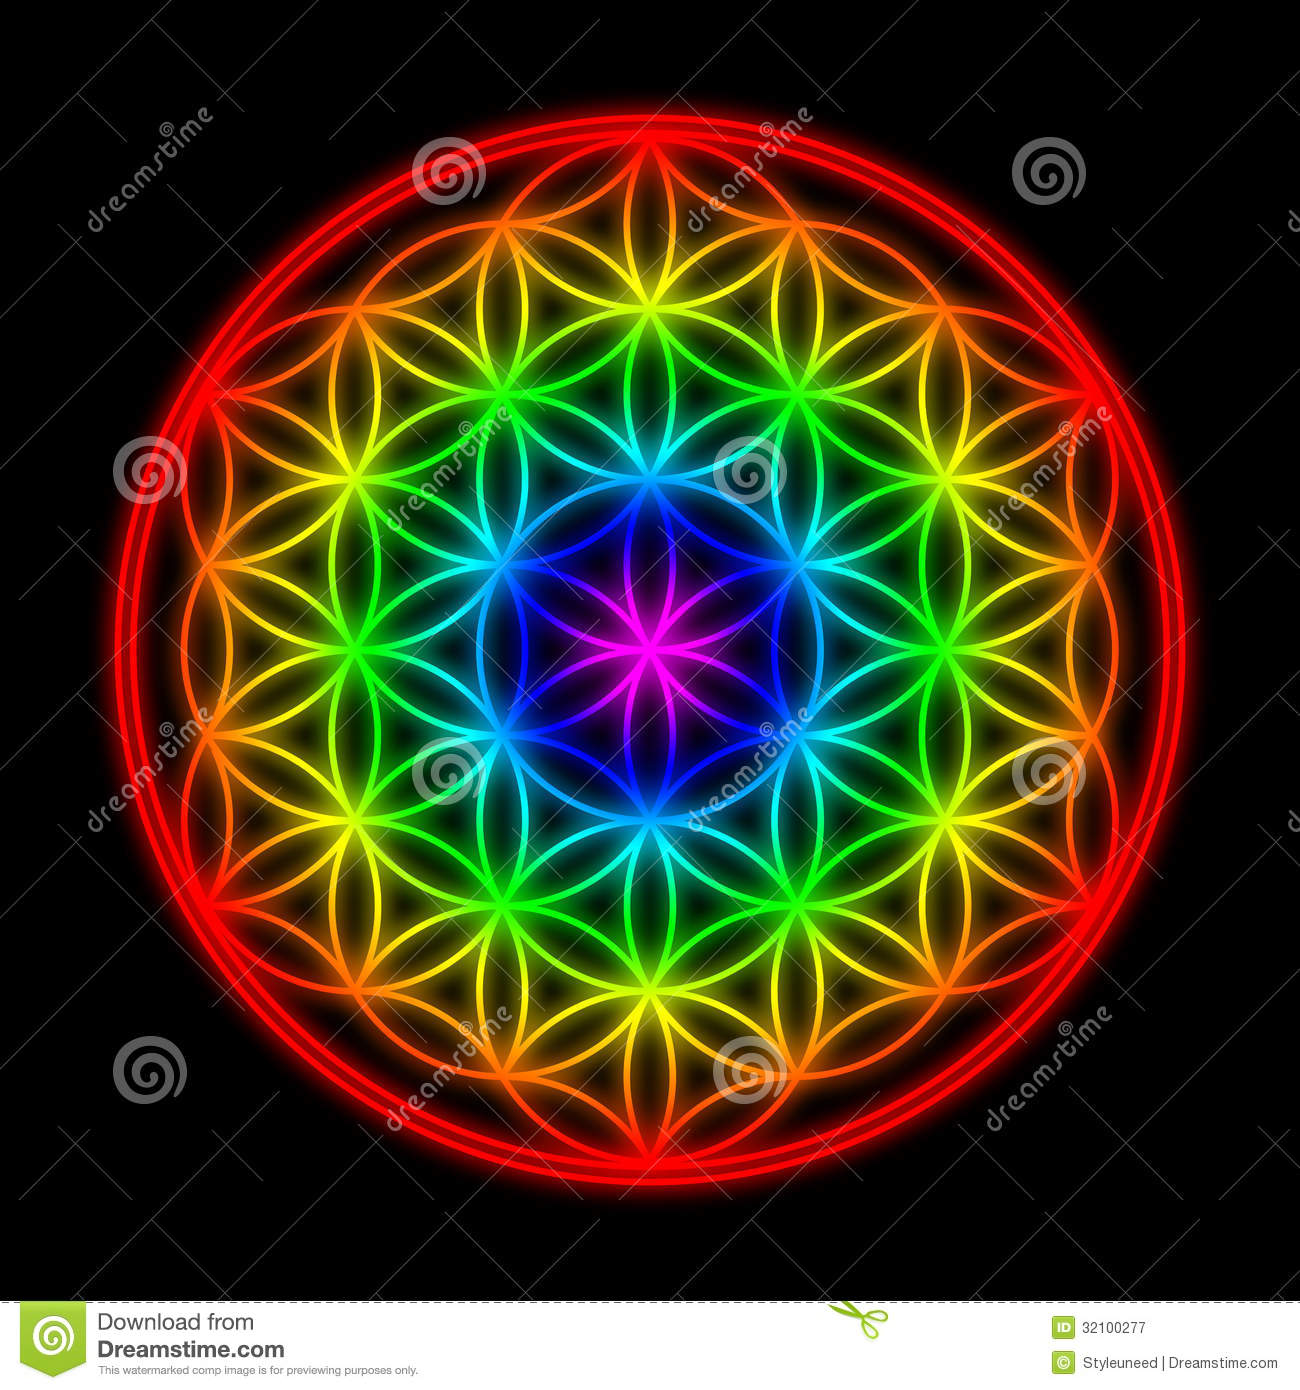 Beautiful Flower Of Life Image Free Top Collection Of Different